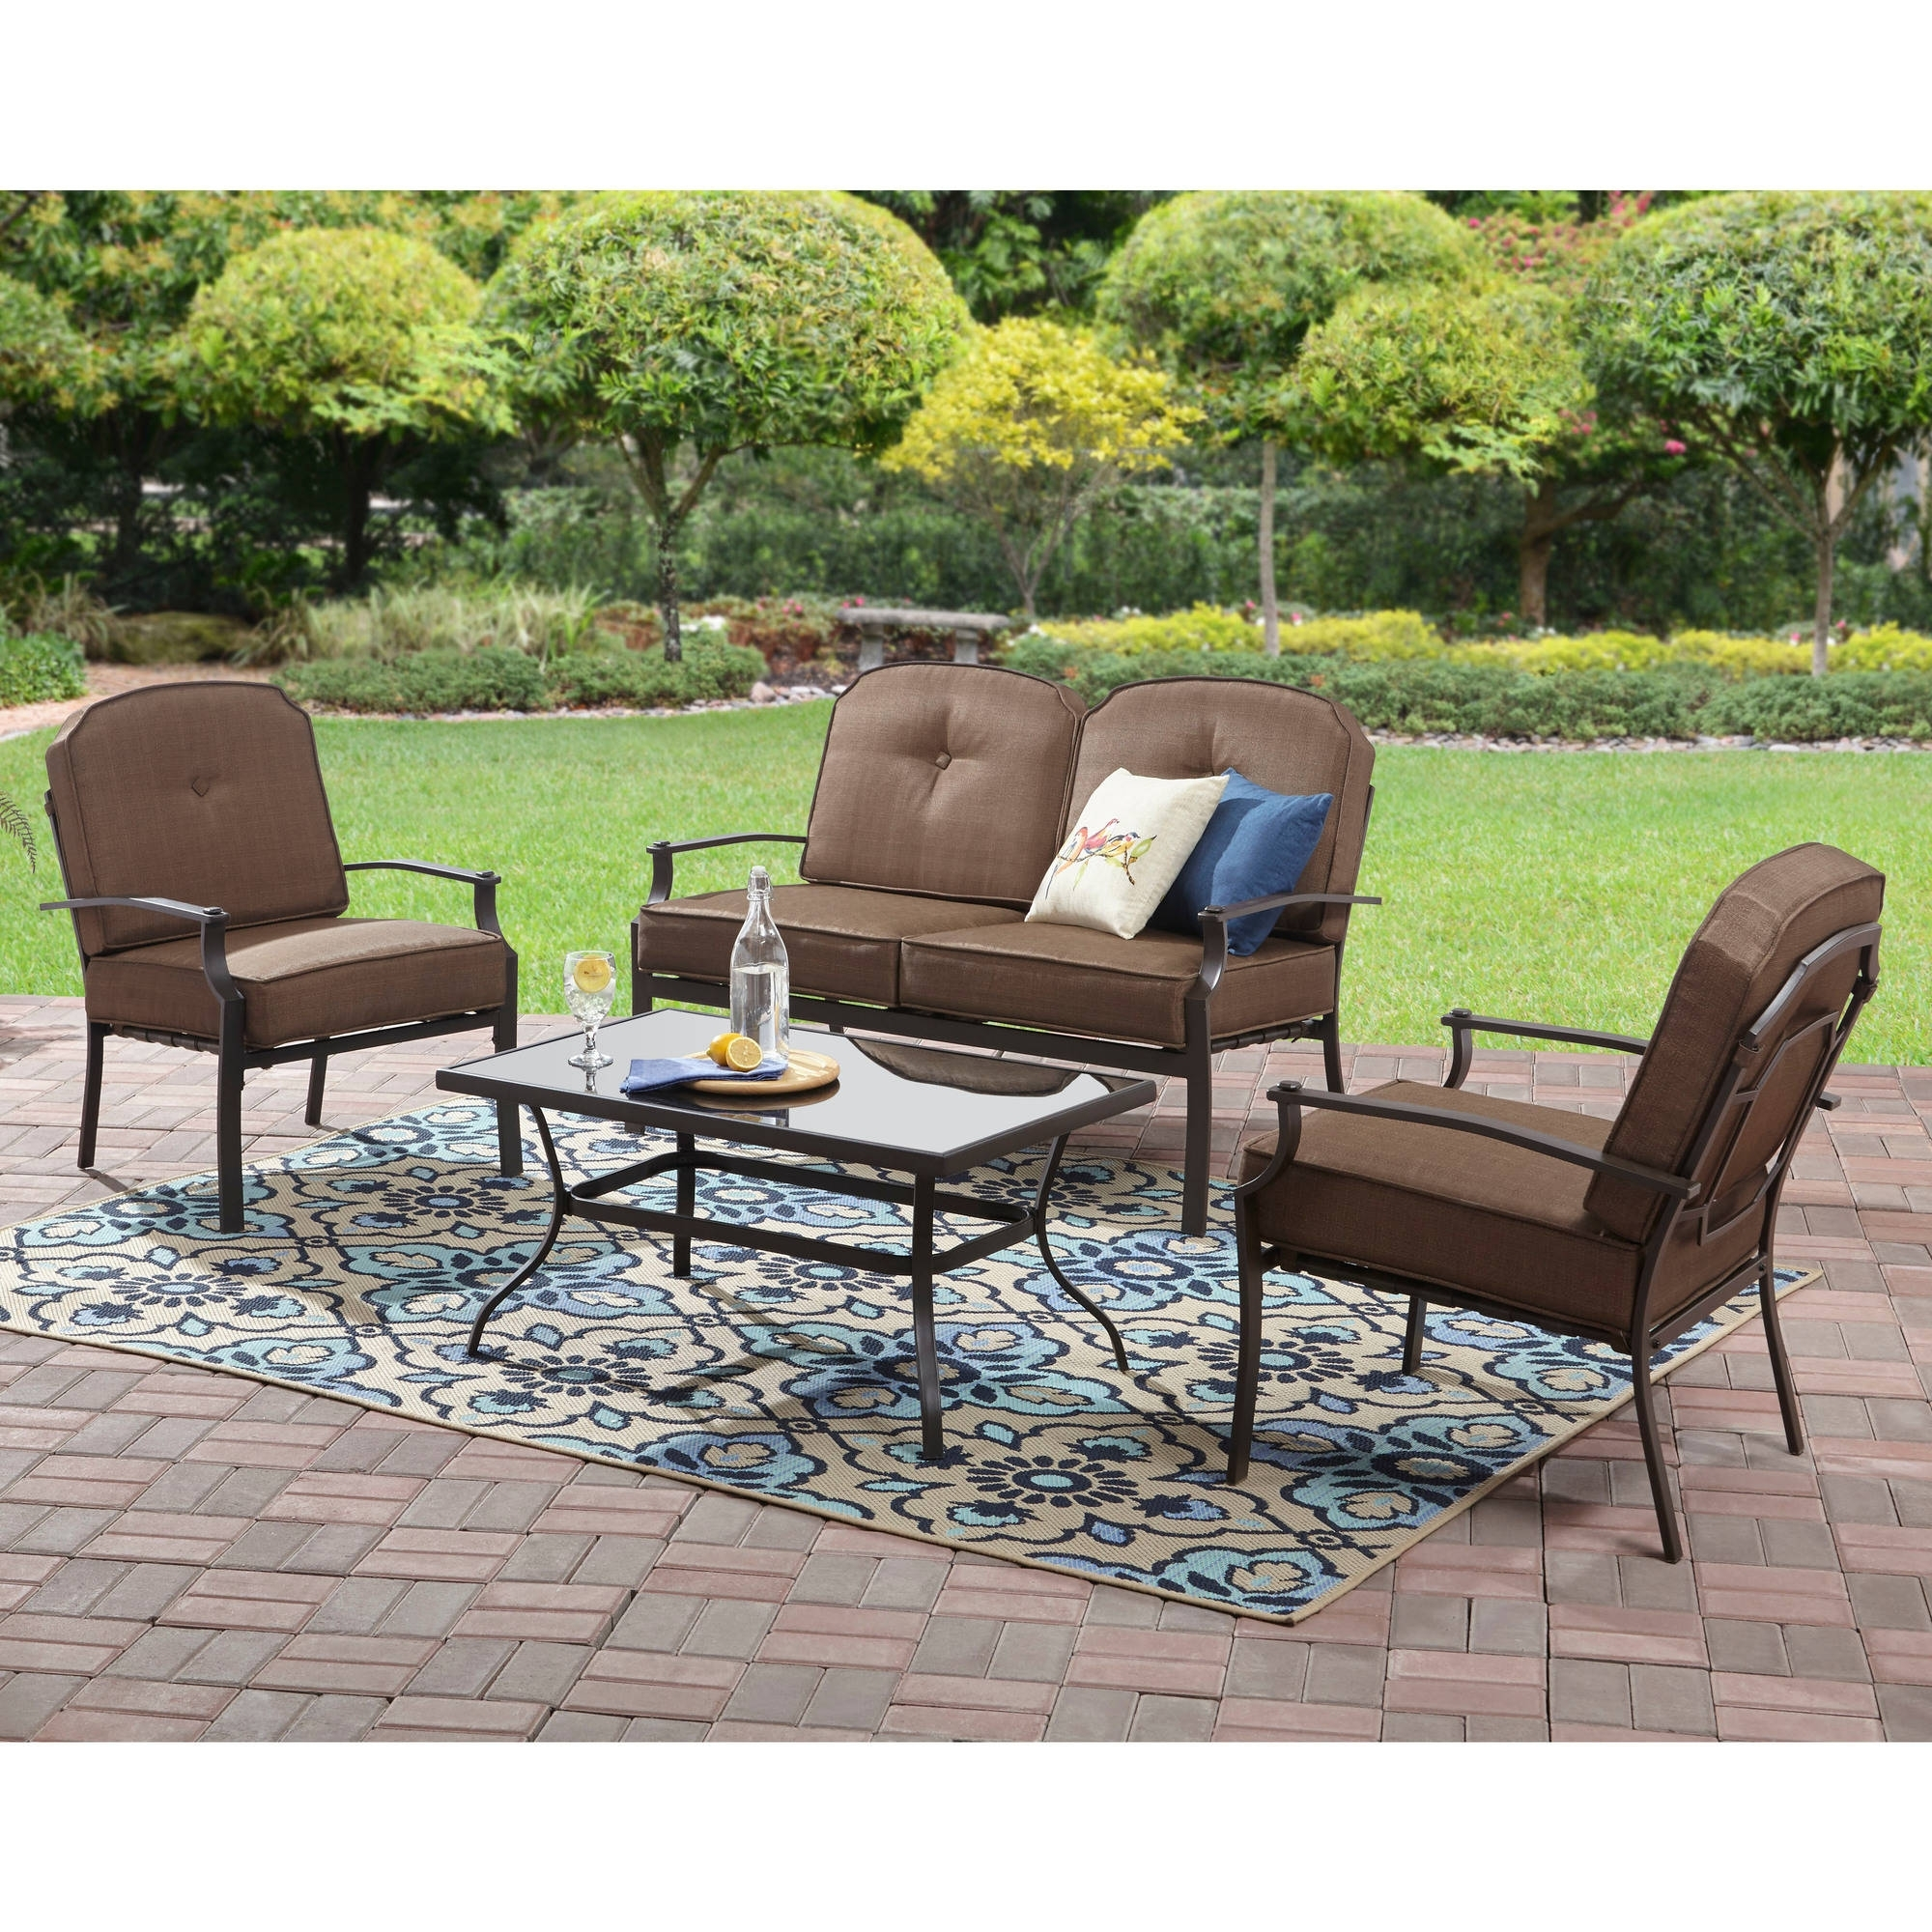 Patio Conversation Sets At Home Depot Intended For Recent Mainstays Spring Creek 5 Piece Patio Dining Set, Seats 4 – Walmart (View 11 of 20)